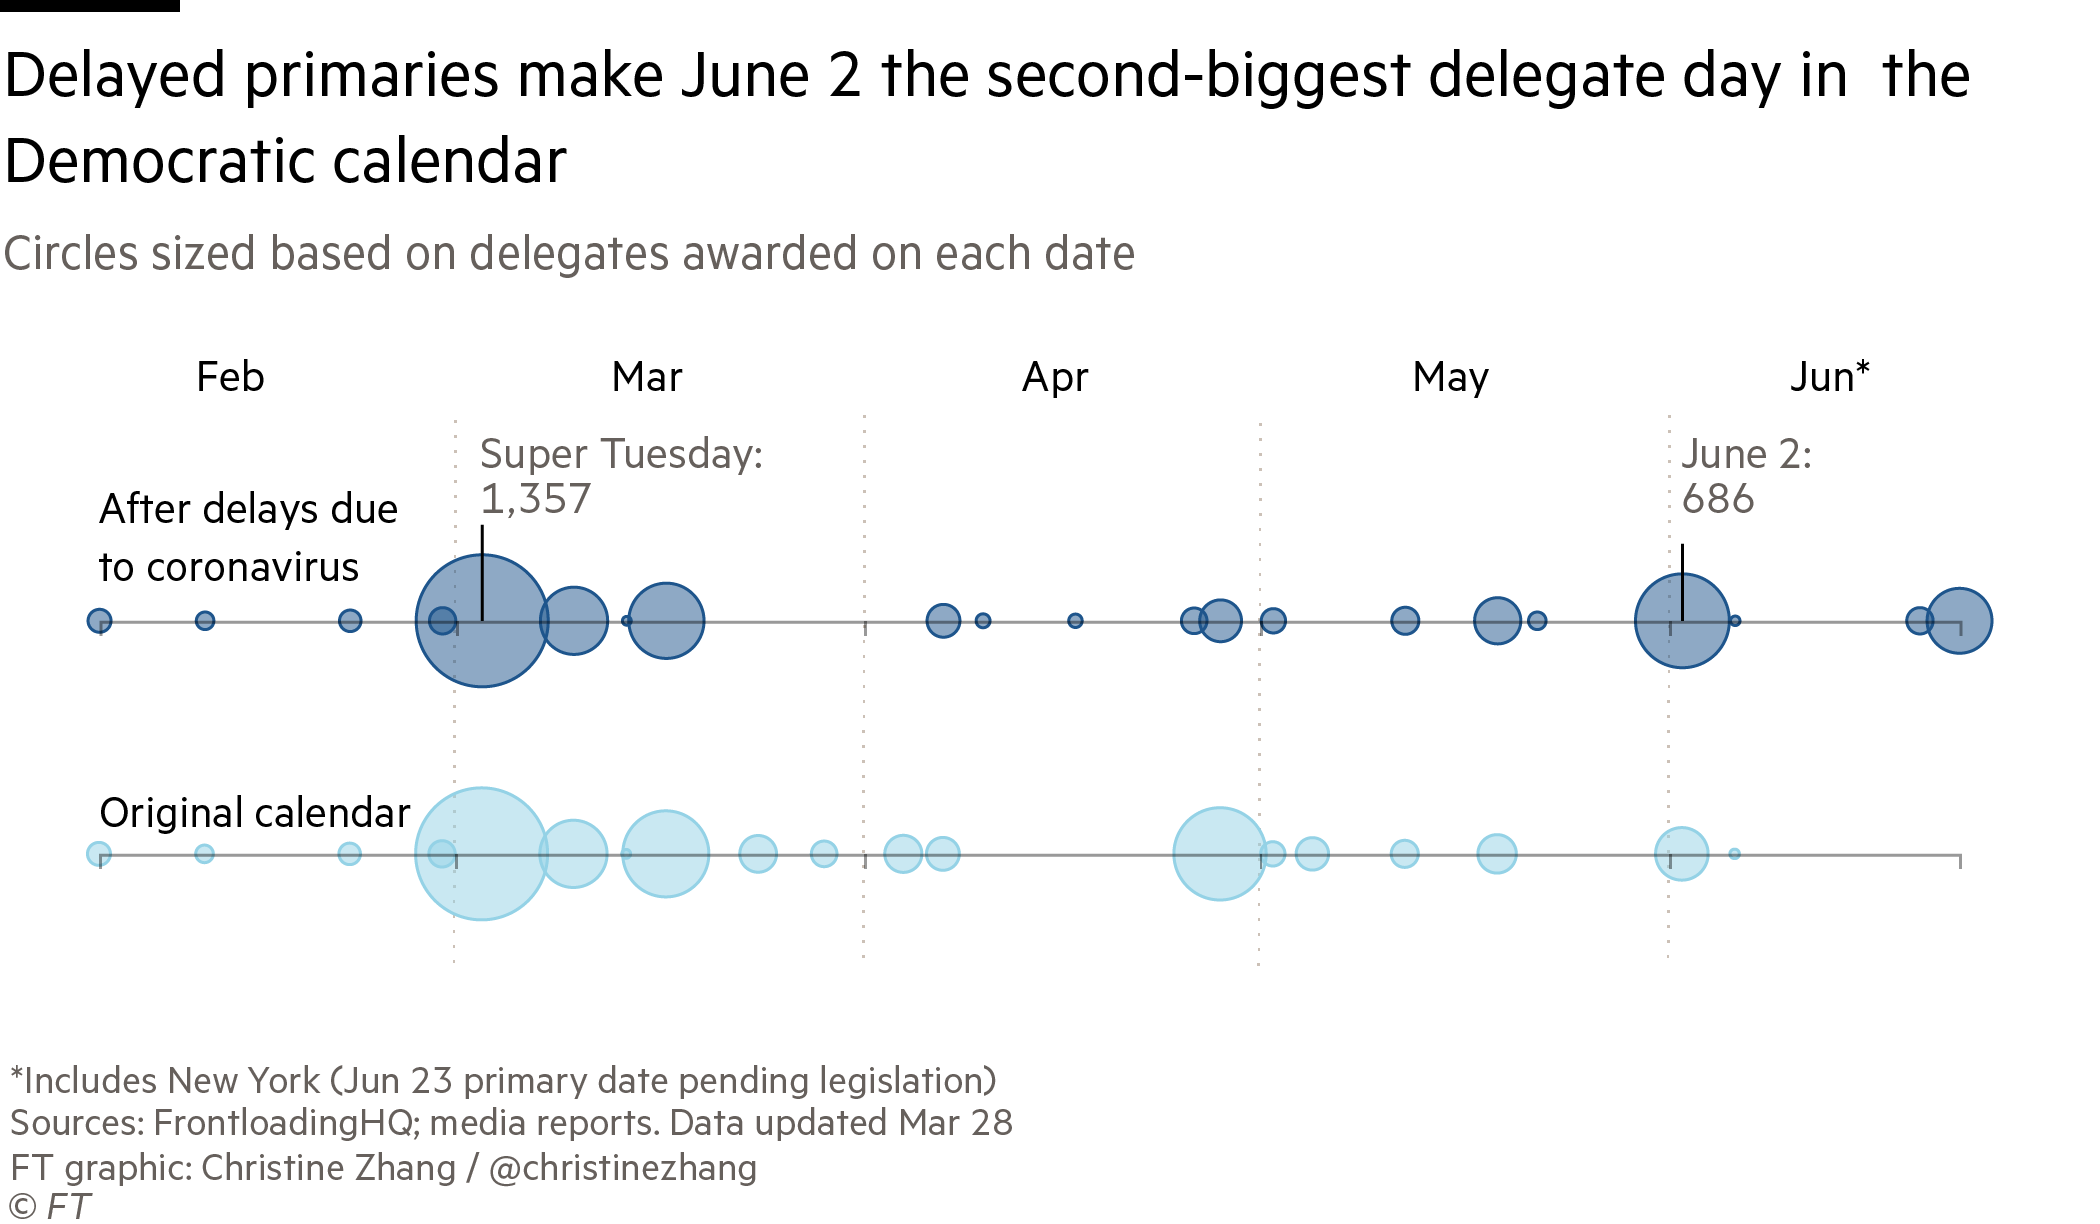 circle timeline showing rearrangement of Democratic primary calendar after delay of several elections due to coronavirus concerns. shows June 2 is now the second-most delegate-rich date after Super Tuesday in March